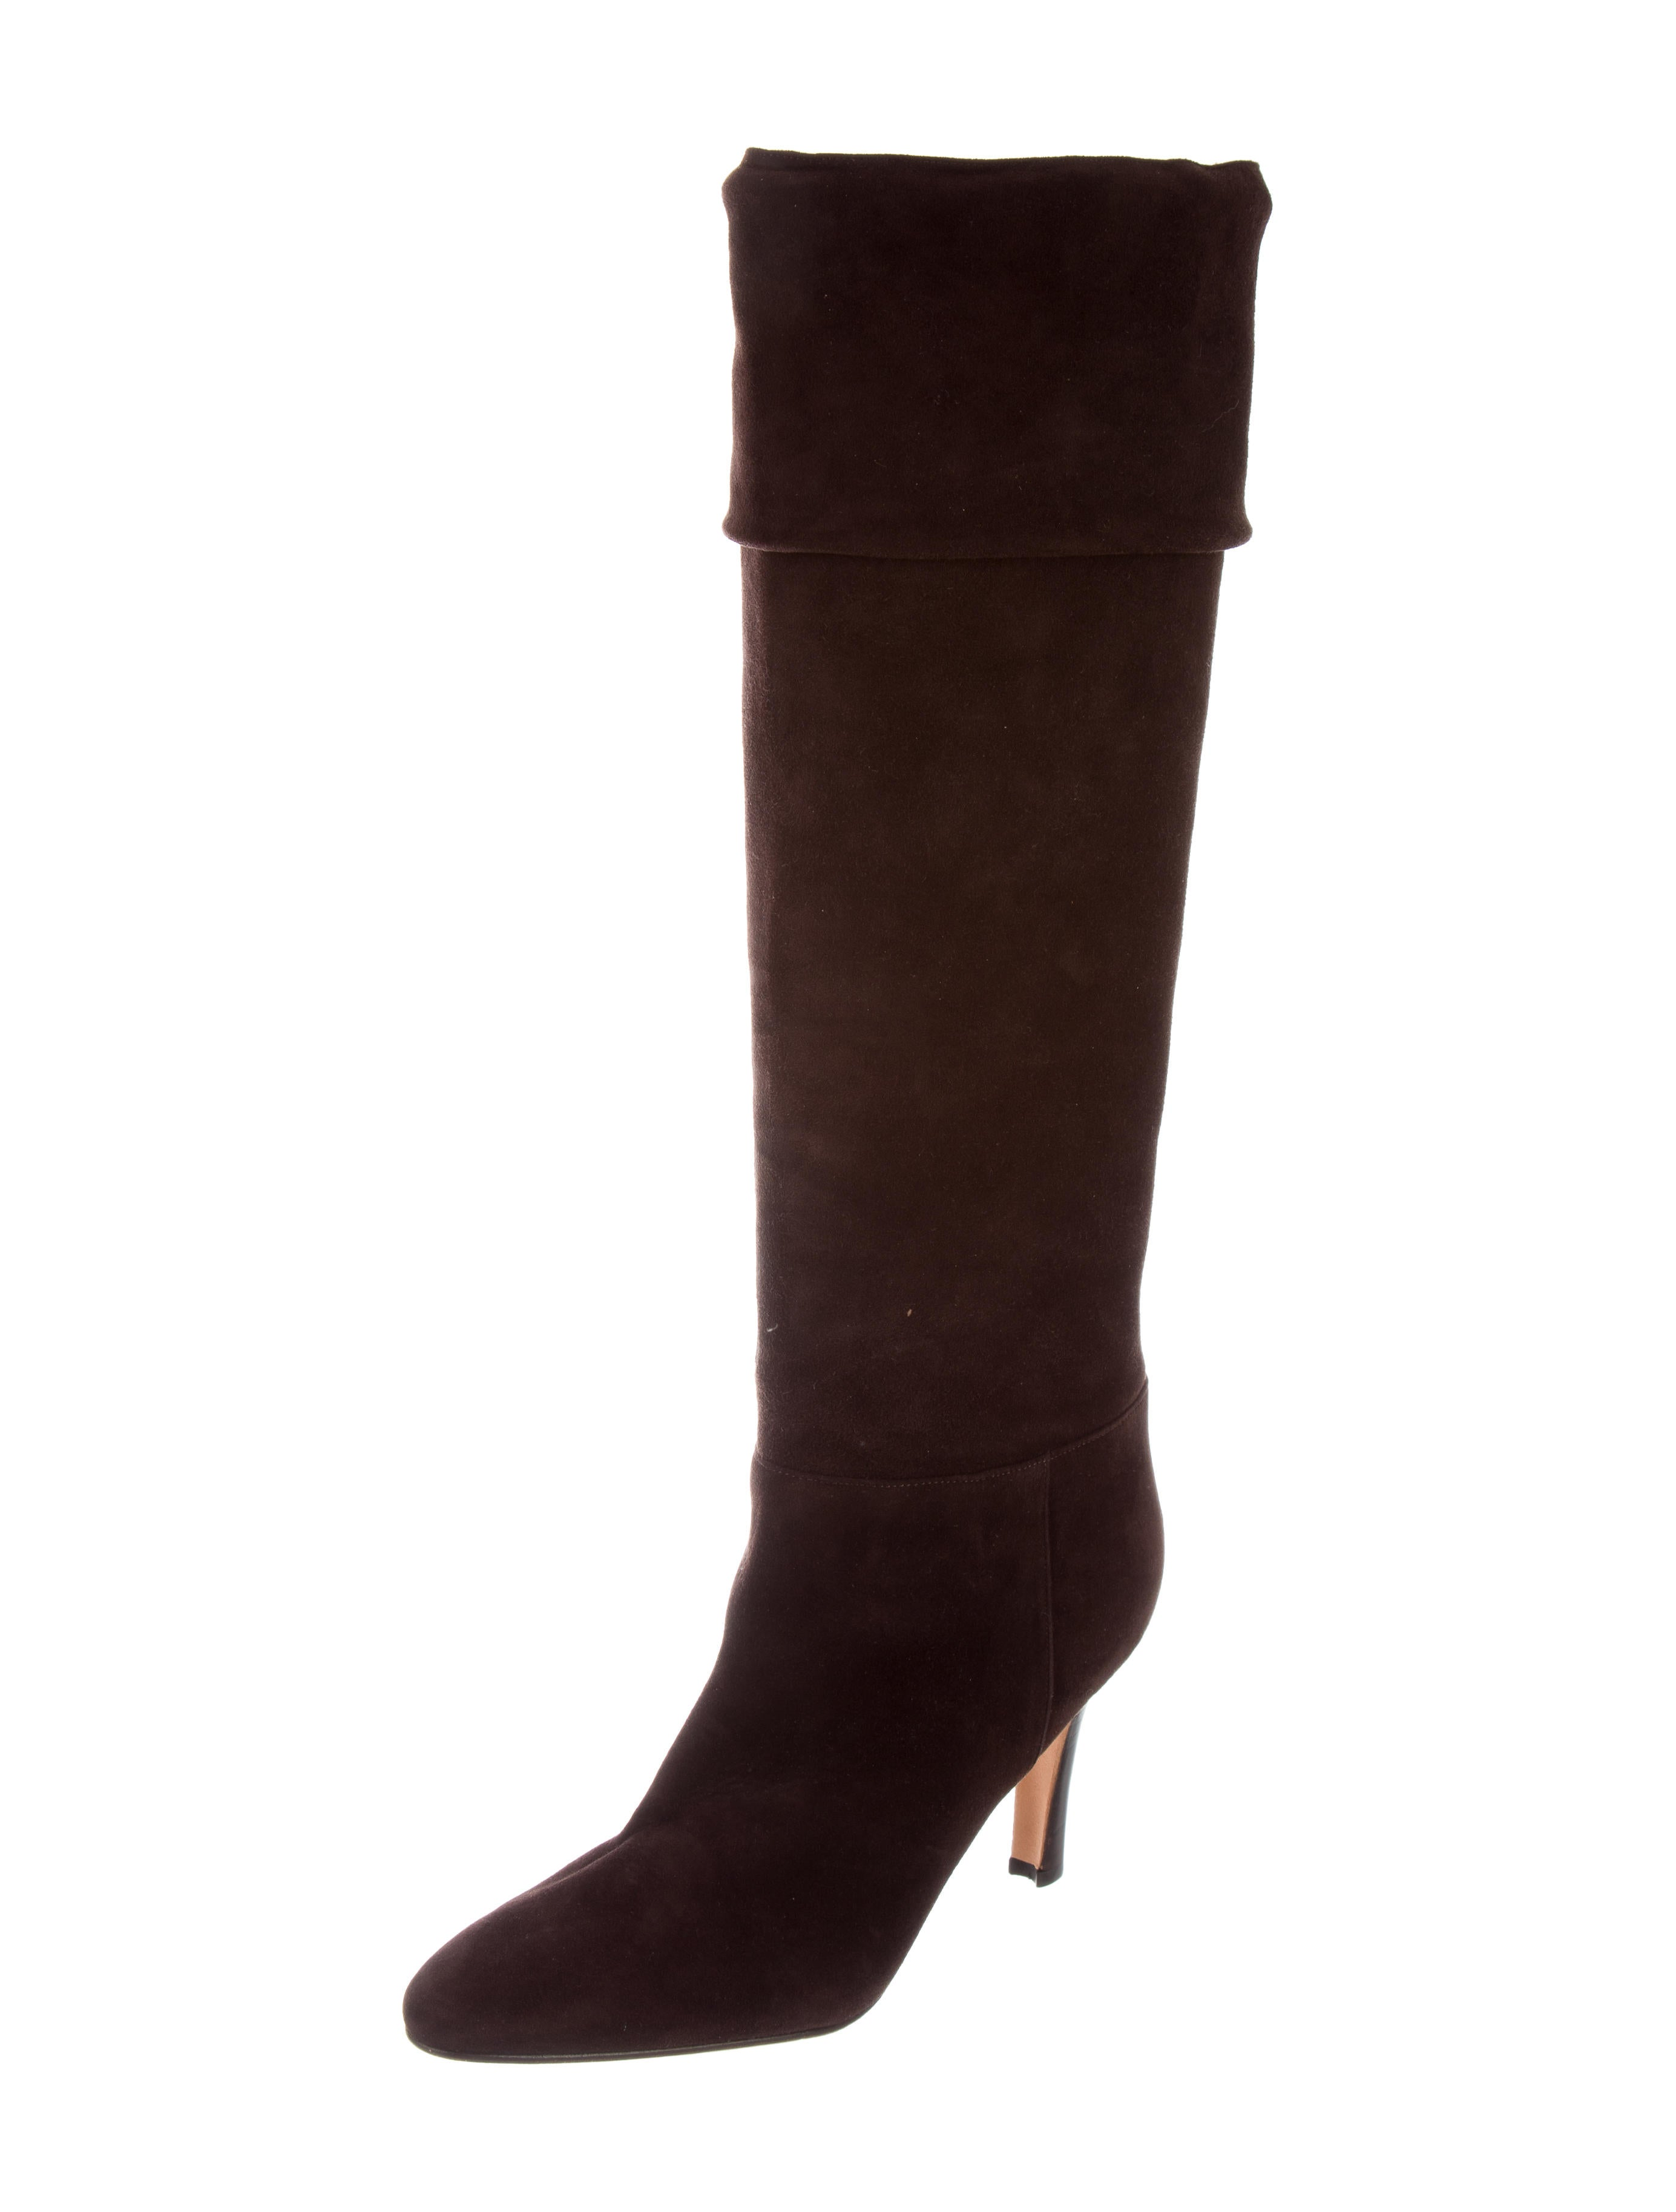 manolo blahnik suede knee high boots shoes moo72222